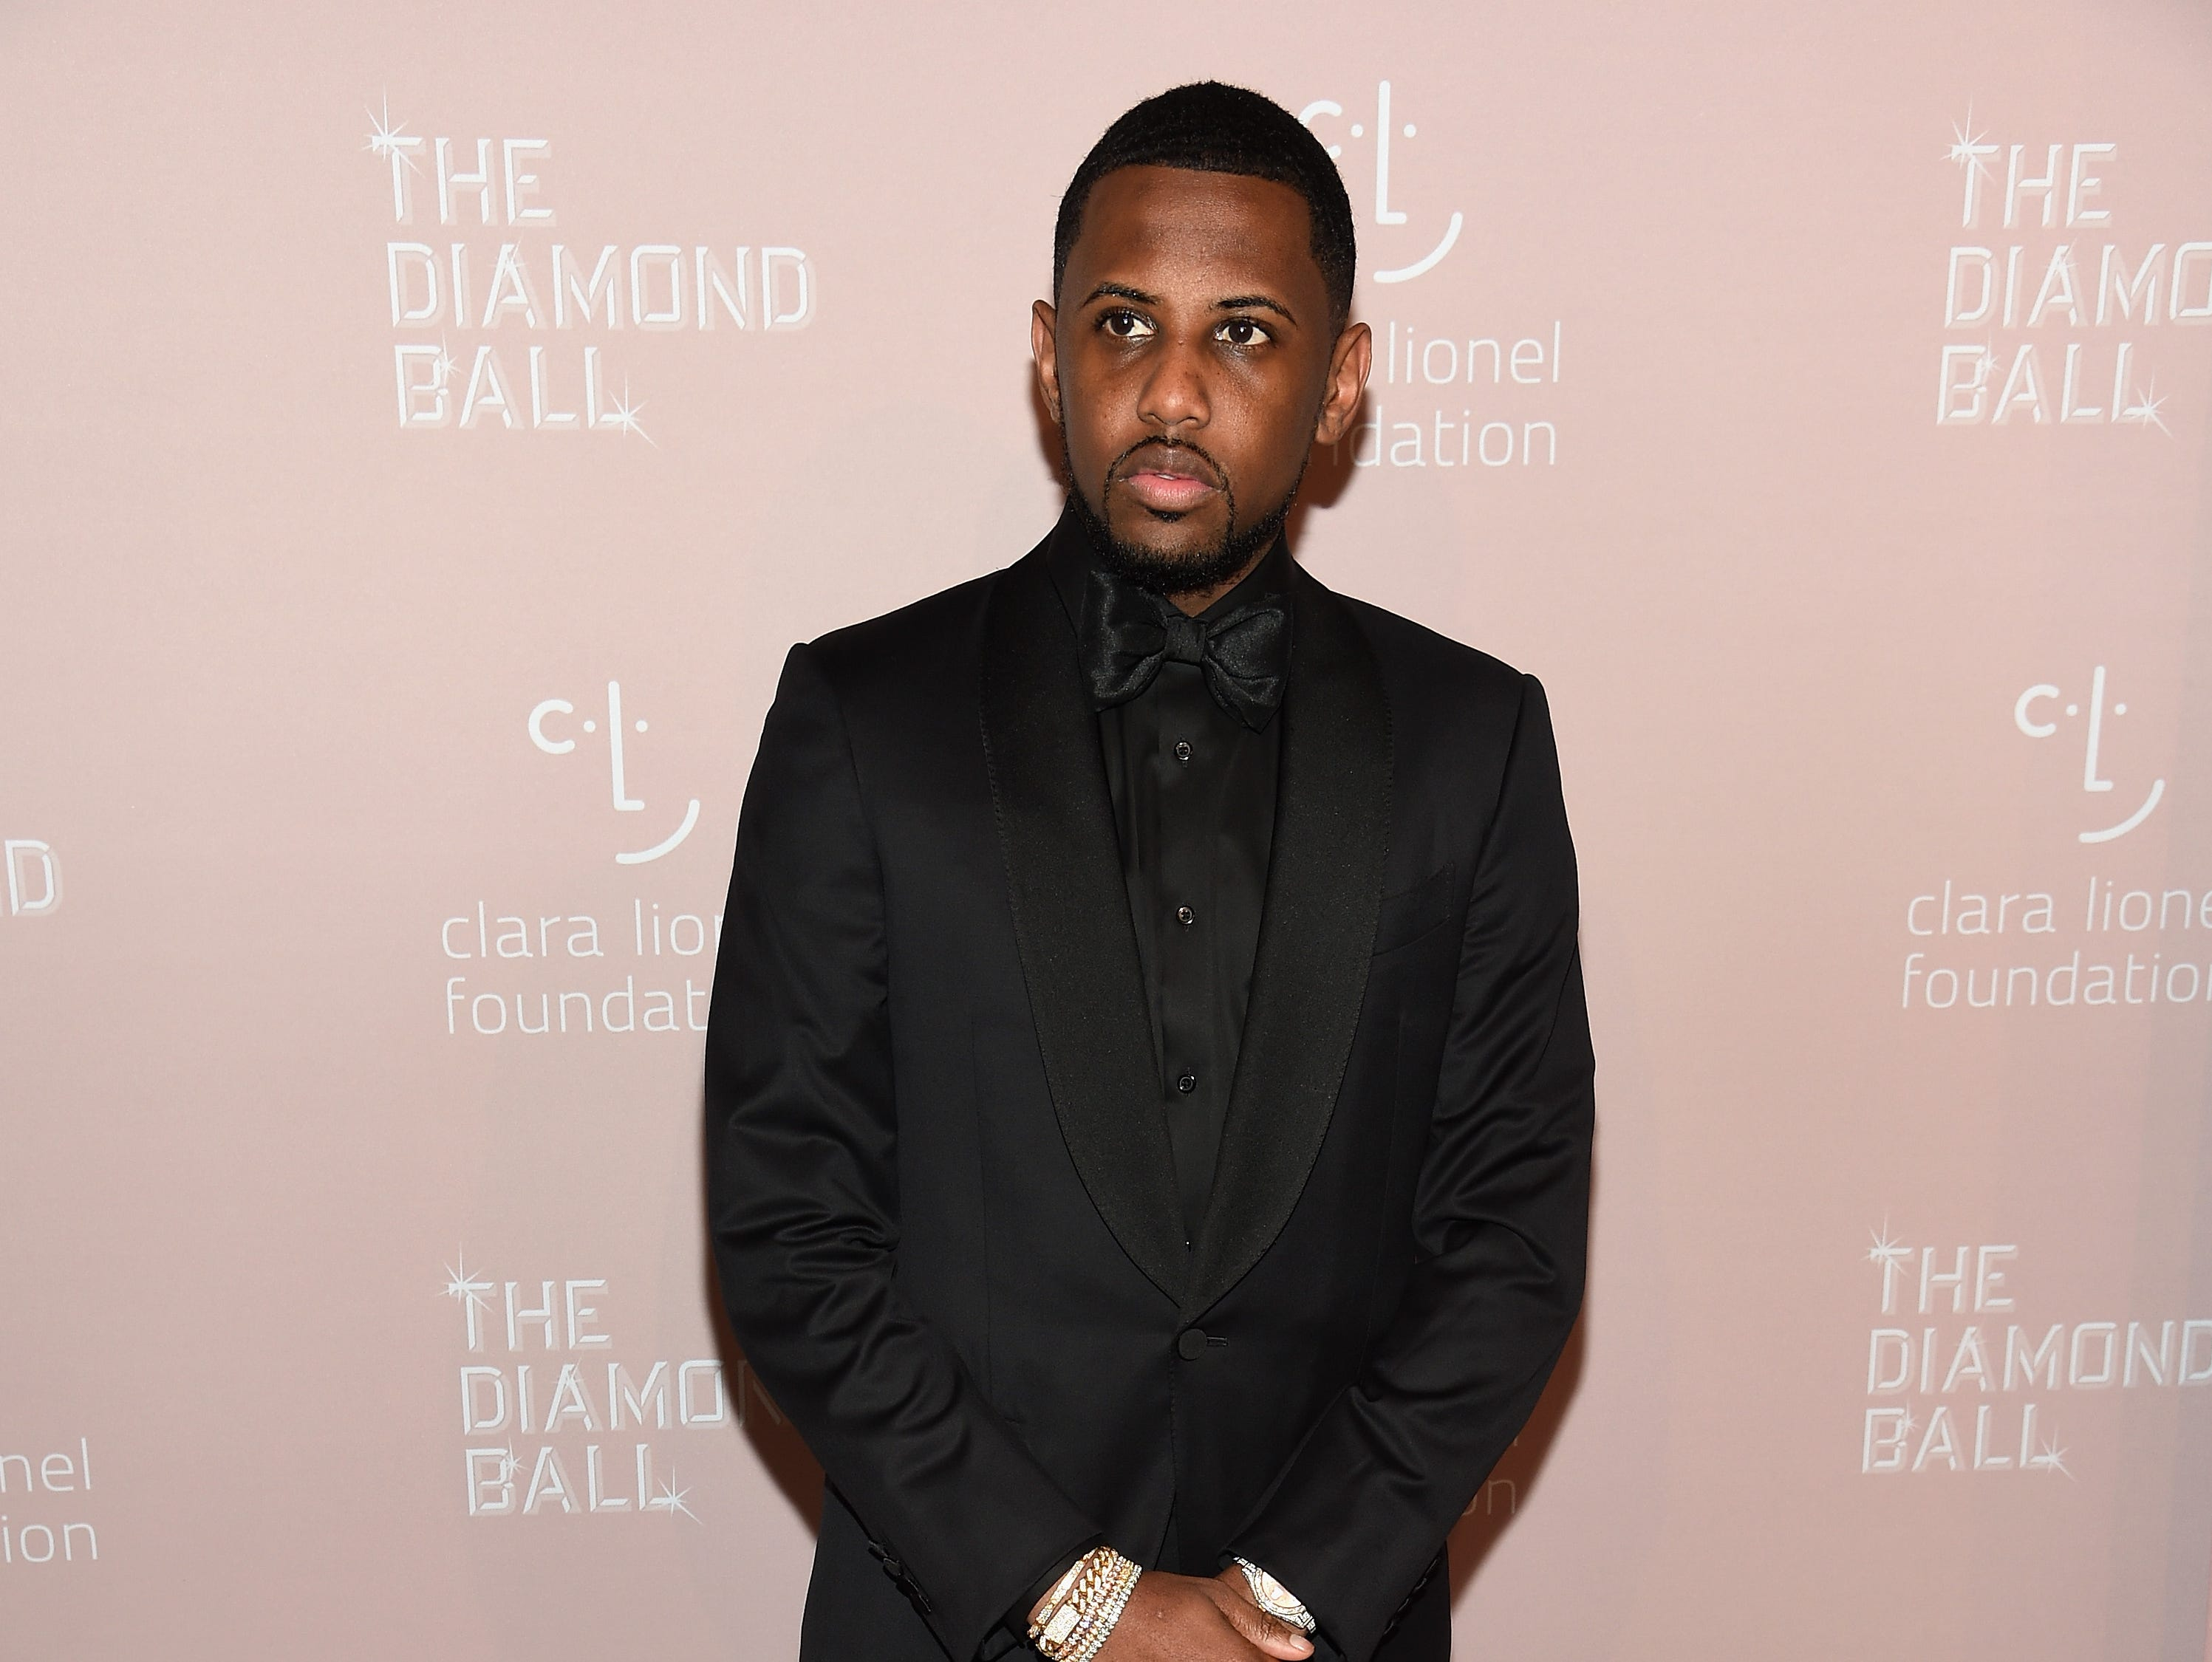 NEW YORK, NY - SEPTEMBER 13:  Fabolous attends Rihanna's 4th Annual Diamond Ball benefitting The Clara Lionel Foundation at Cipriani Wall Street on September 13, 2018 in New York City.  (Photo by Dimitrios Kambouris/Getty Images for Diamond Ball) ORG XMIT: 775197456 ORIG FILE ID: 1032933028